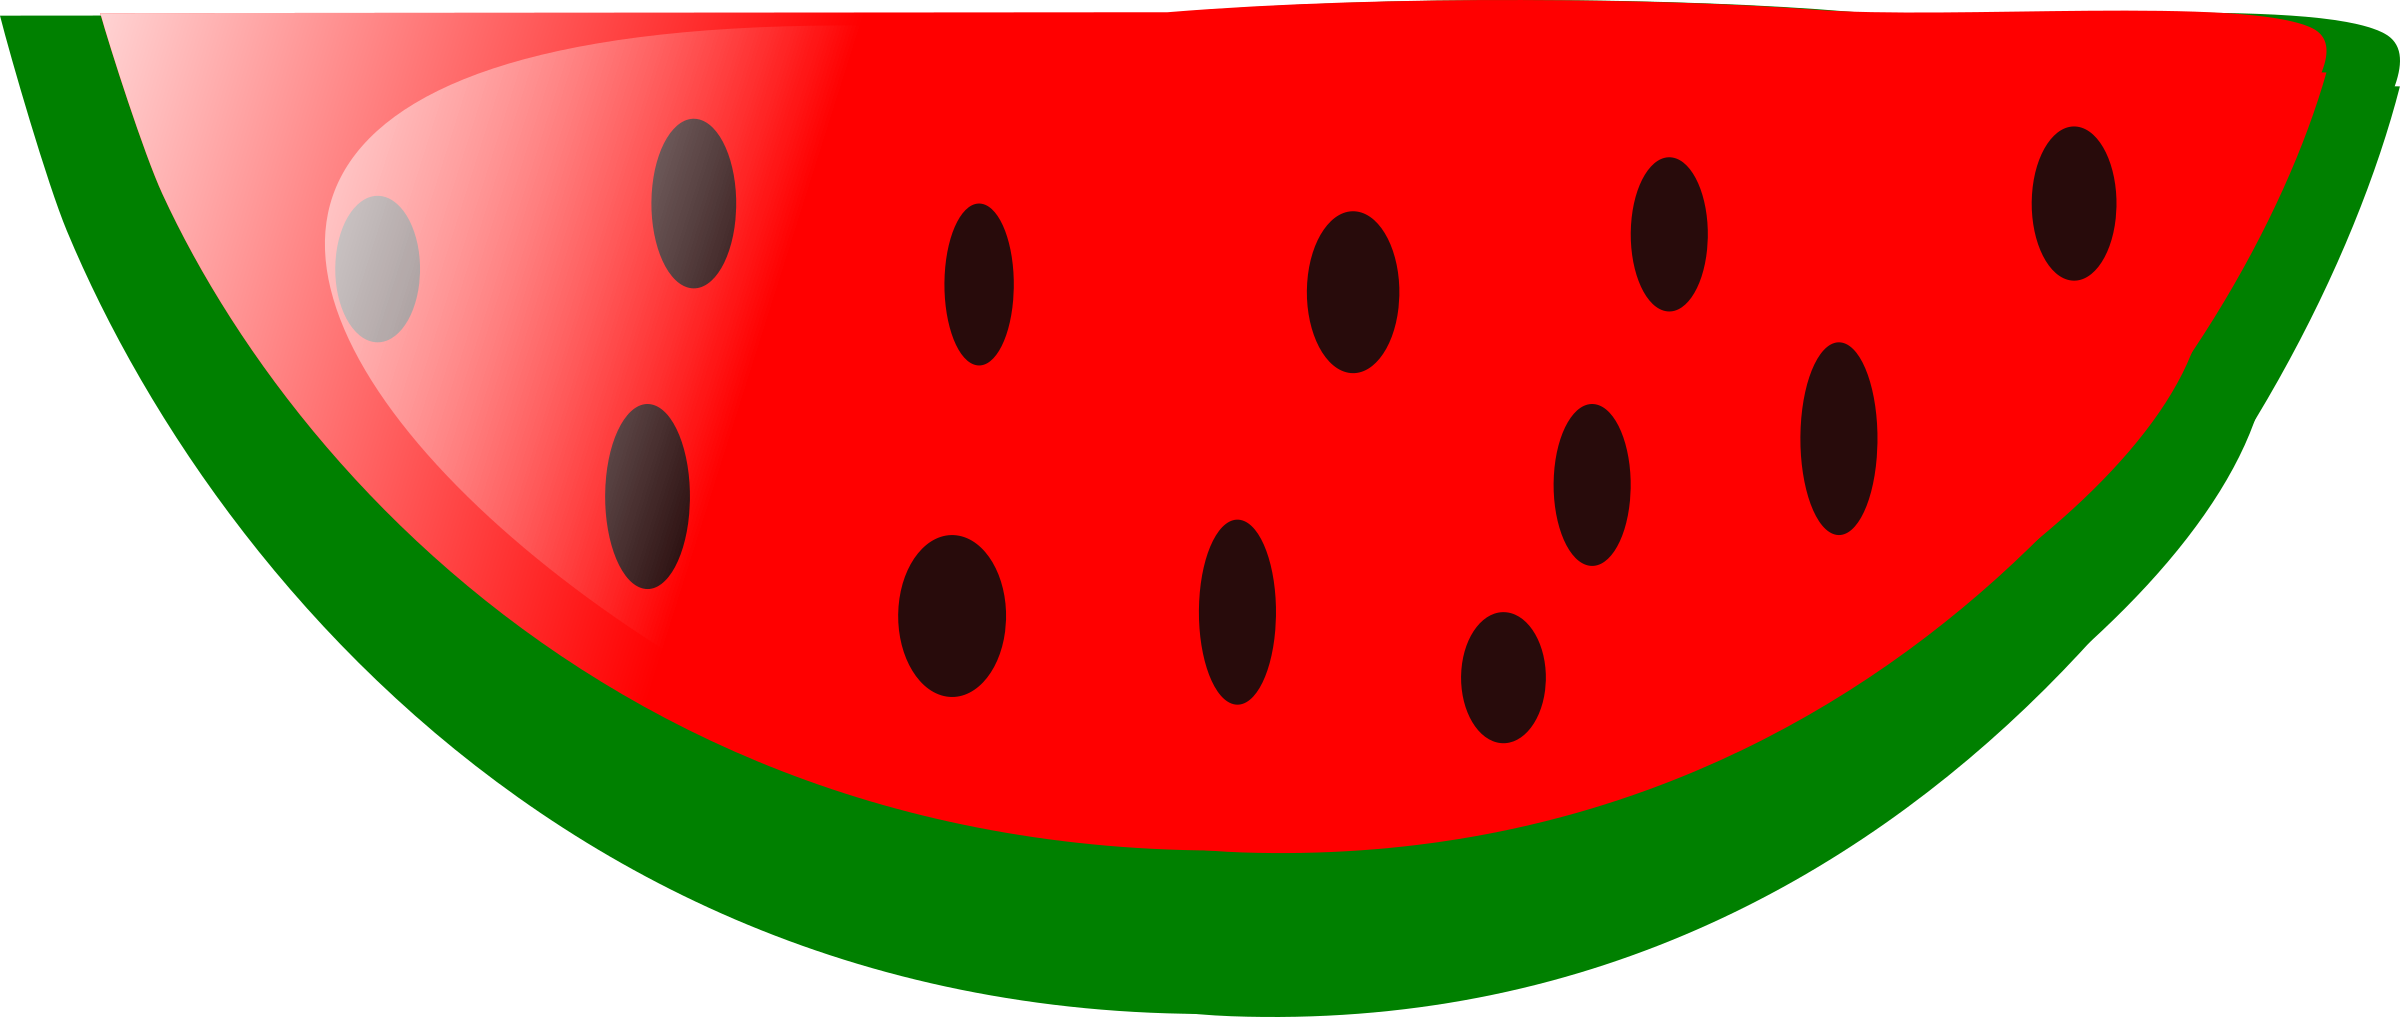 Watermelon big image png. Circle clipart fruit